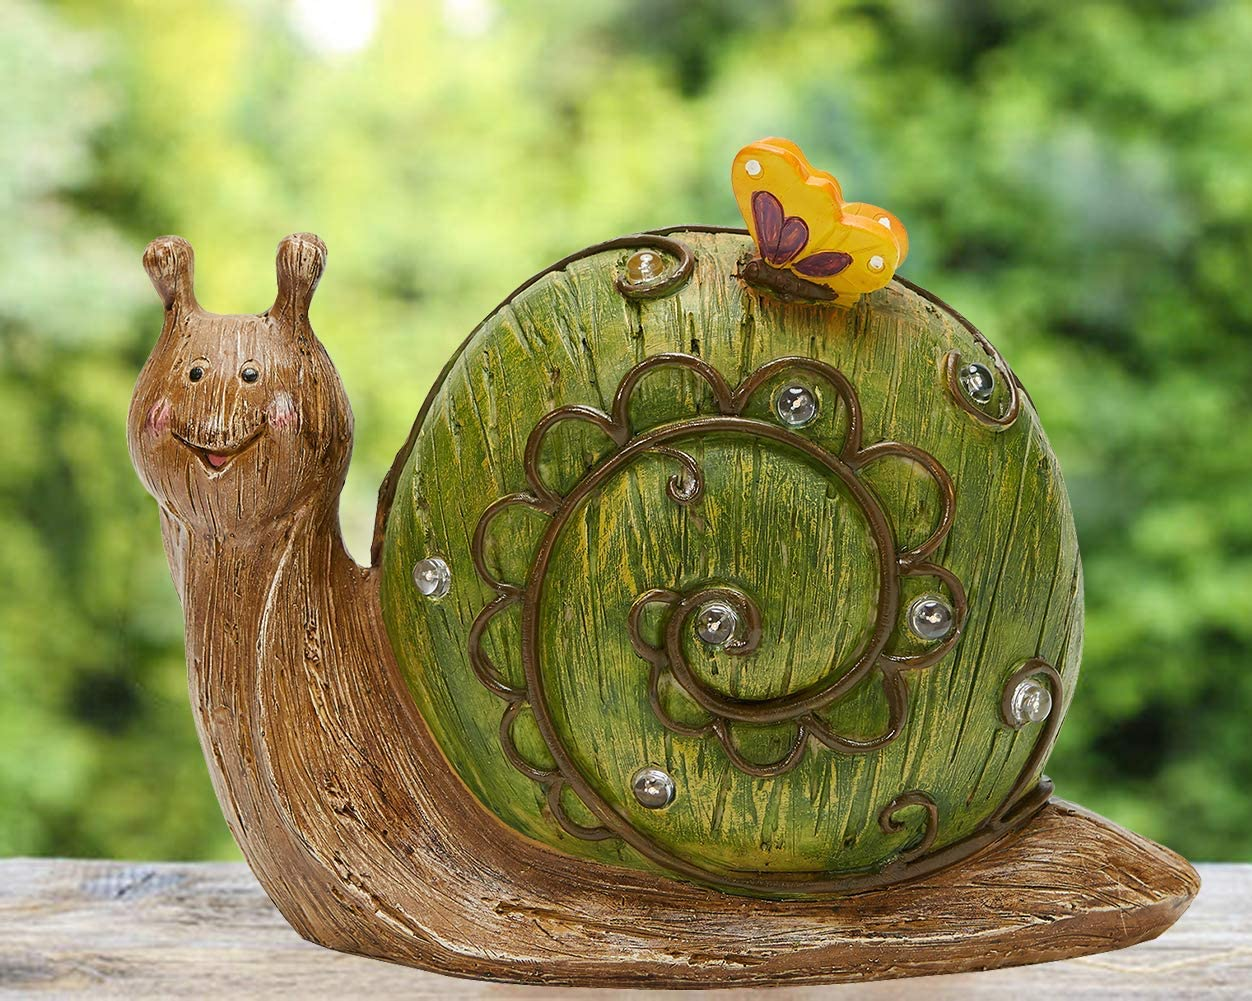 JHVYF Solar Powered Garden Light Resin Snail Figurine Butterfly Animal Sculpture Patio Lawn Yard Outdoor Statue with Solar LED Lights Art Ornaments,10x7.6Inch